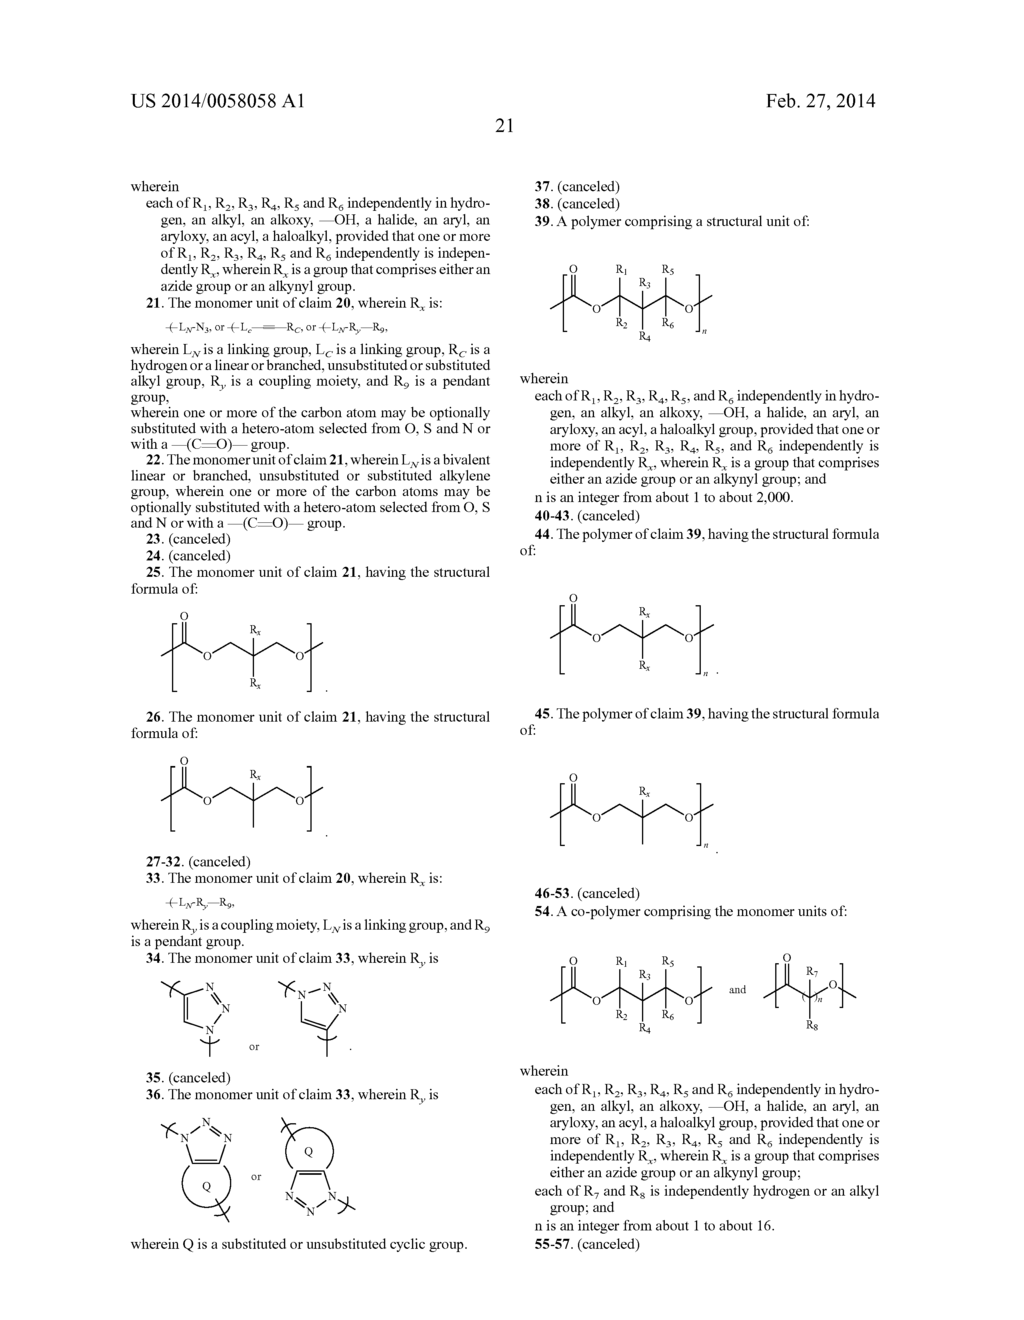 MONOMERS AND POLYMERS FOR FUNCTIONAL POLYCARBONATES AND     POLY(ESTER-CARBONATES) AND PEG-CO-POLYCARBONATE HYDROGELS - diagram, schematic, and image 42